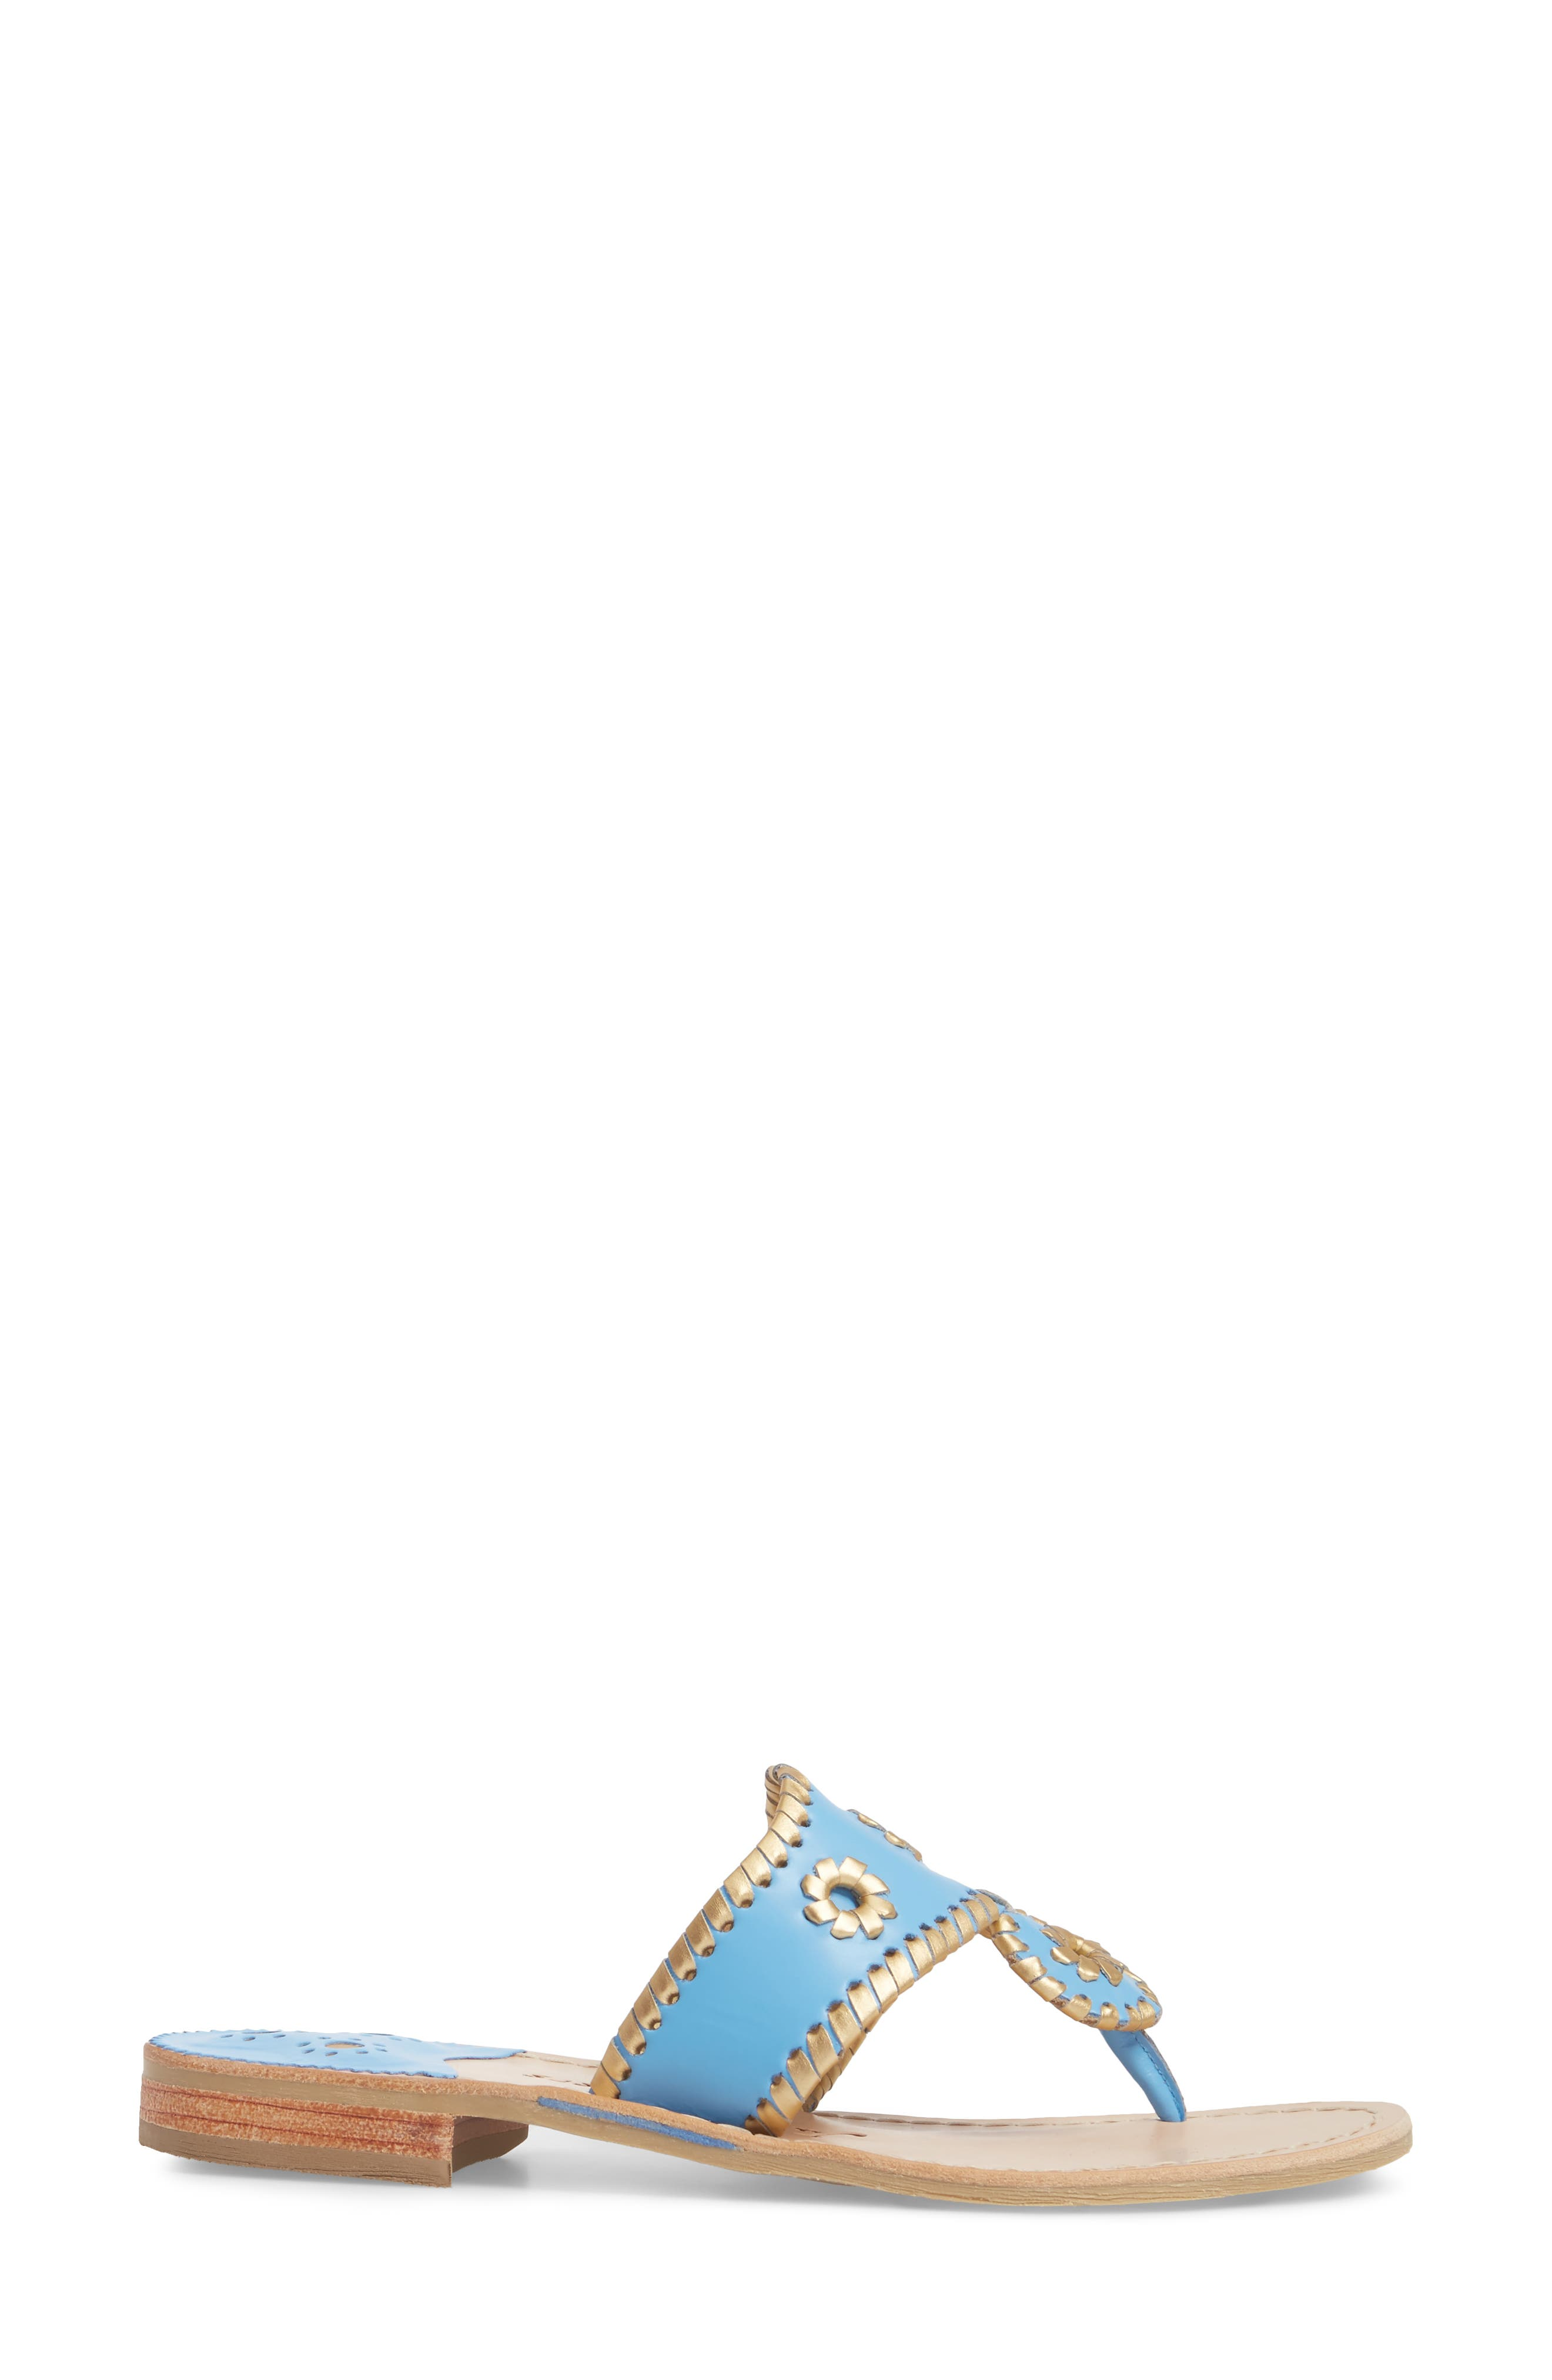 Hollis Flat Sandal,                             Alternate thumbnail 3, color,                             French Blue Leather